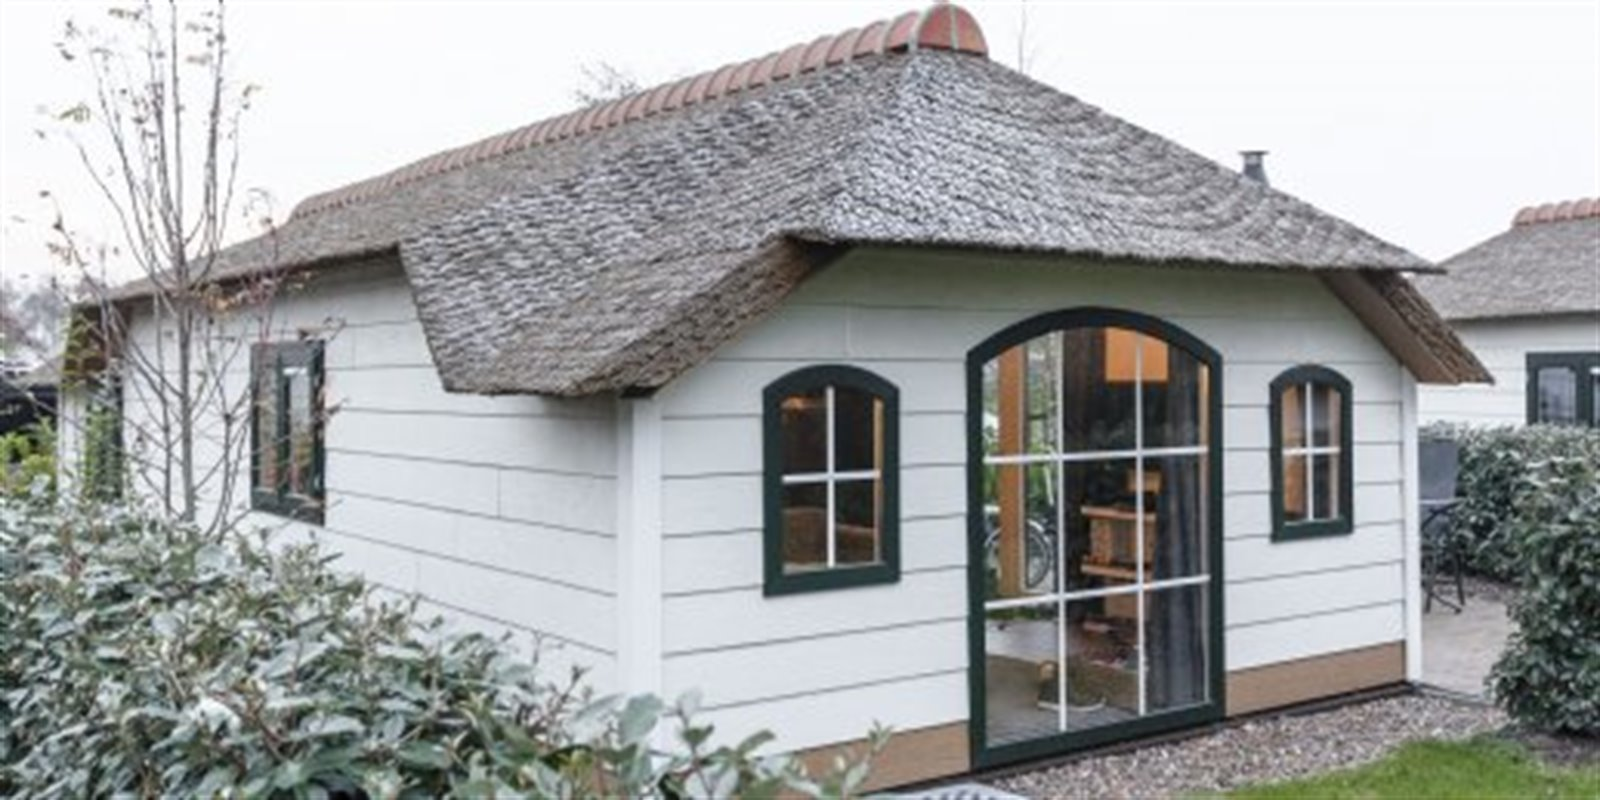 Landal Schuttersbos | 2-4 Pers.-Cottage | Typ 2...